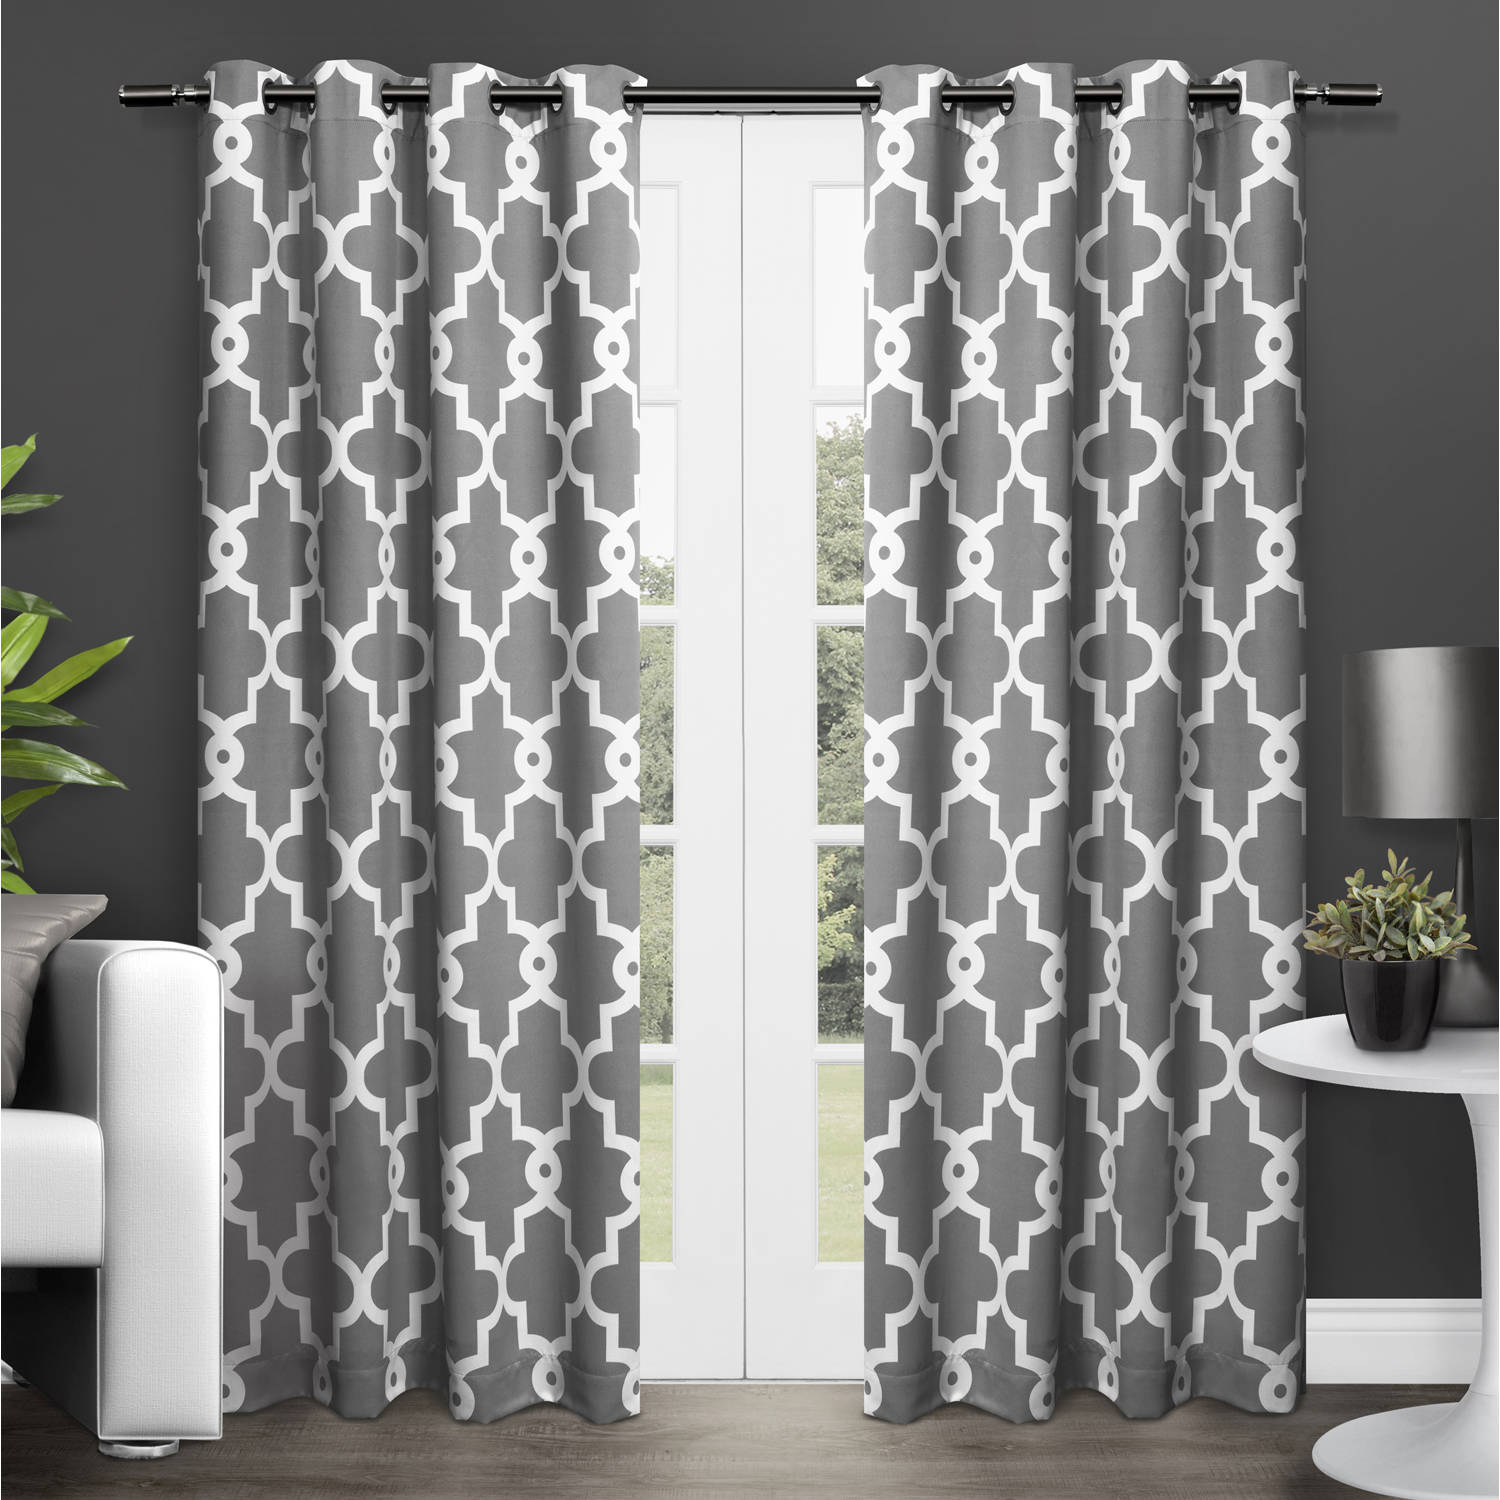 Grey Thermal Curtains Exclusive Home Curtains 2 Pack Ironwork Sateen Woven Blackout Grommet Top Curtain Panels